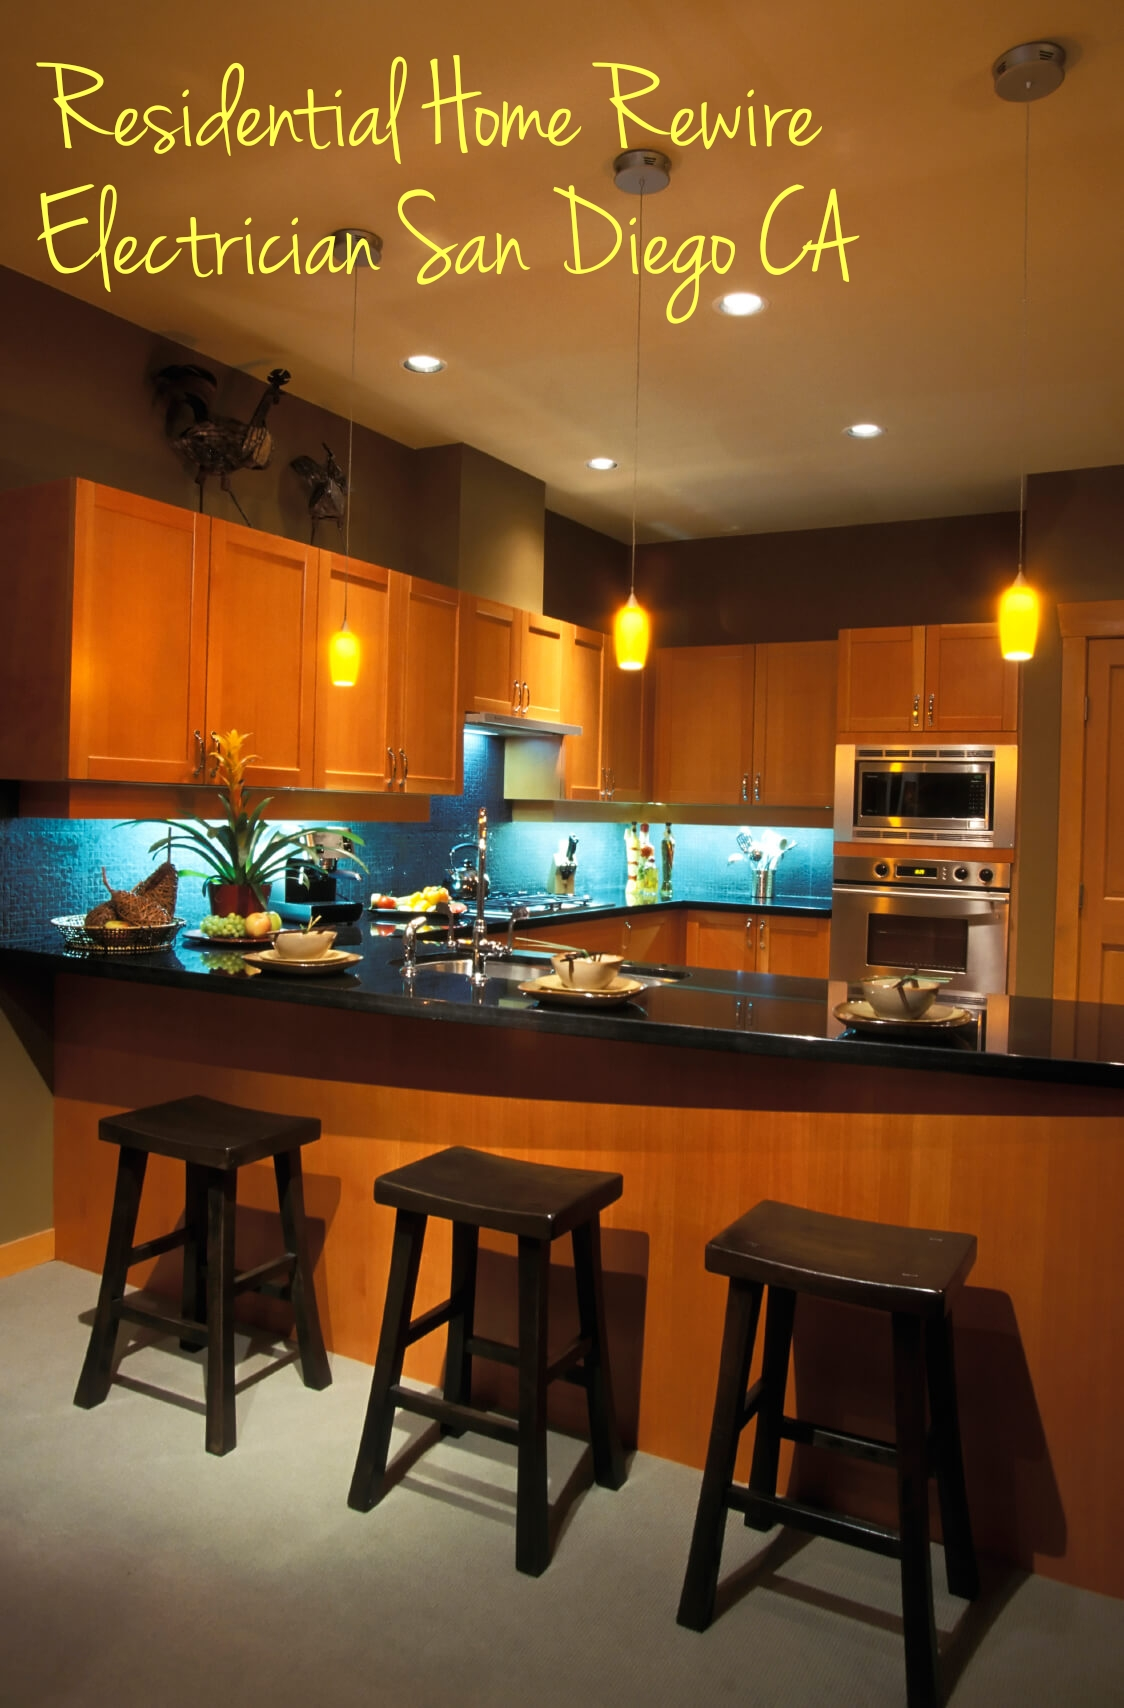 Residential Home Rewire Electrician San Diego CA